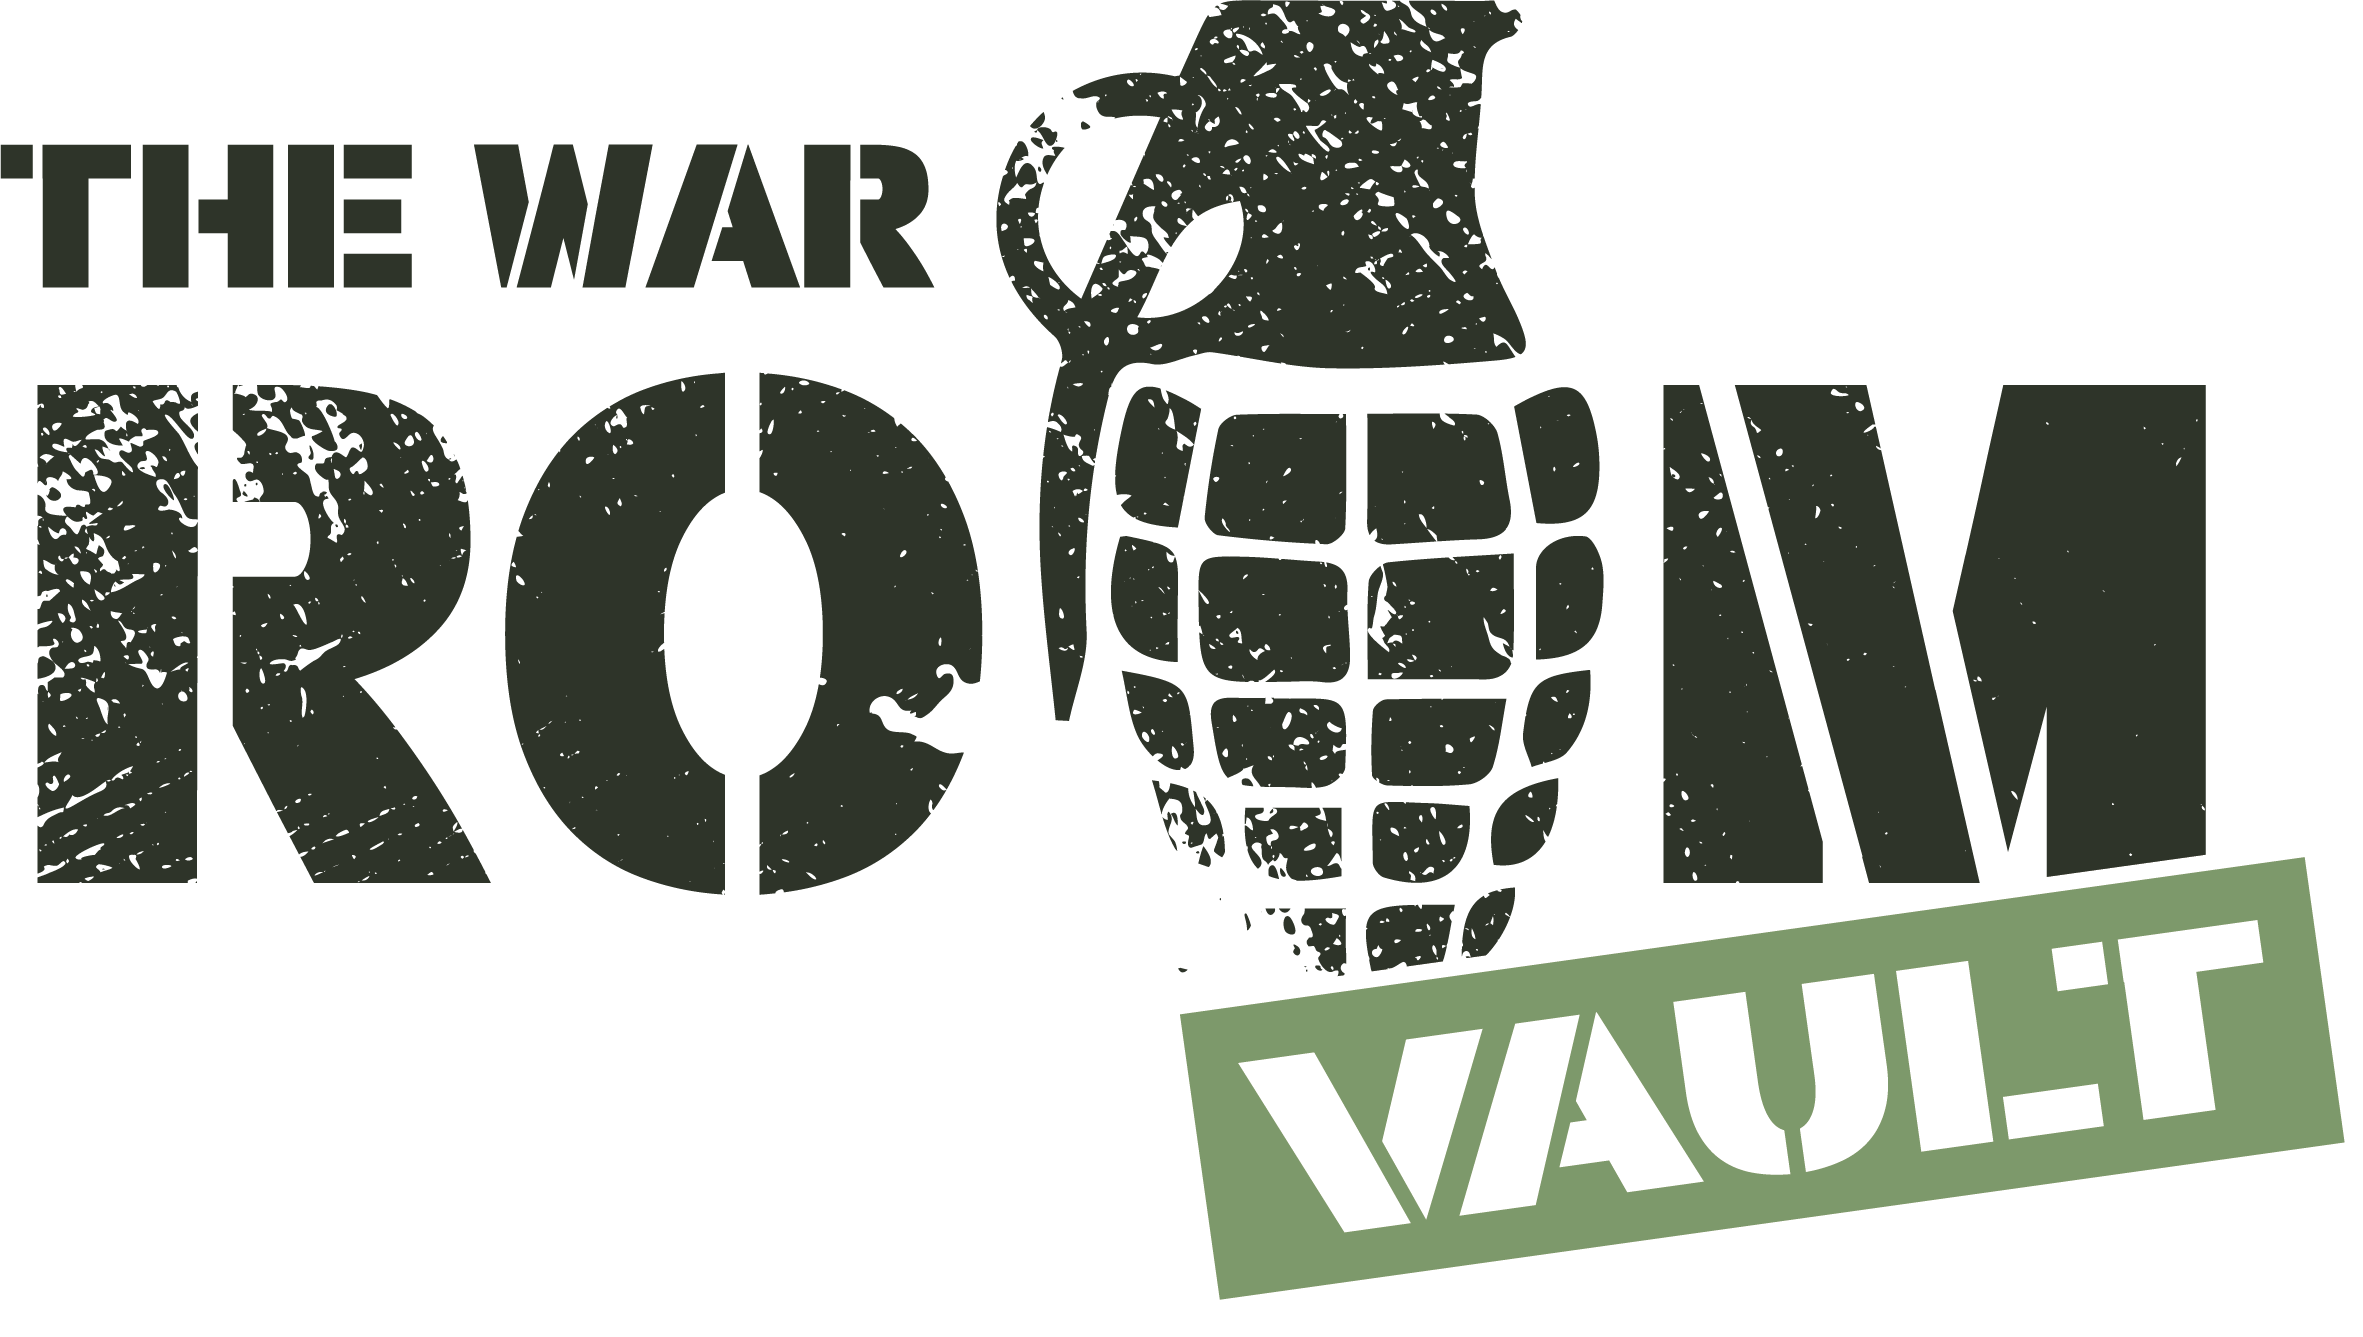 The War Room Vault logo